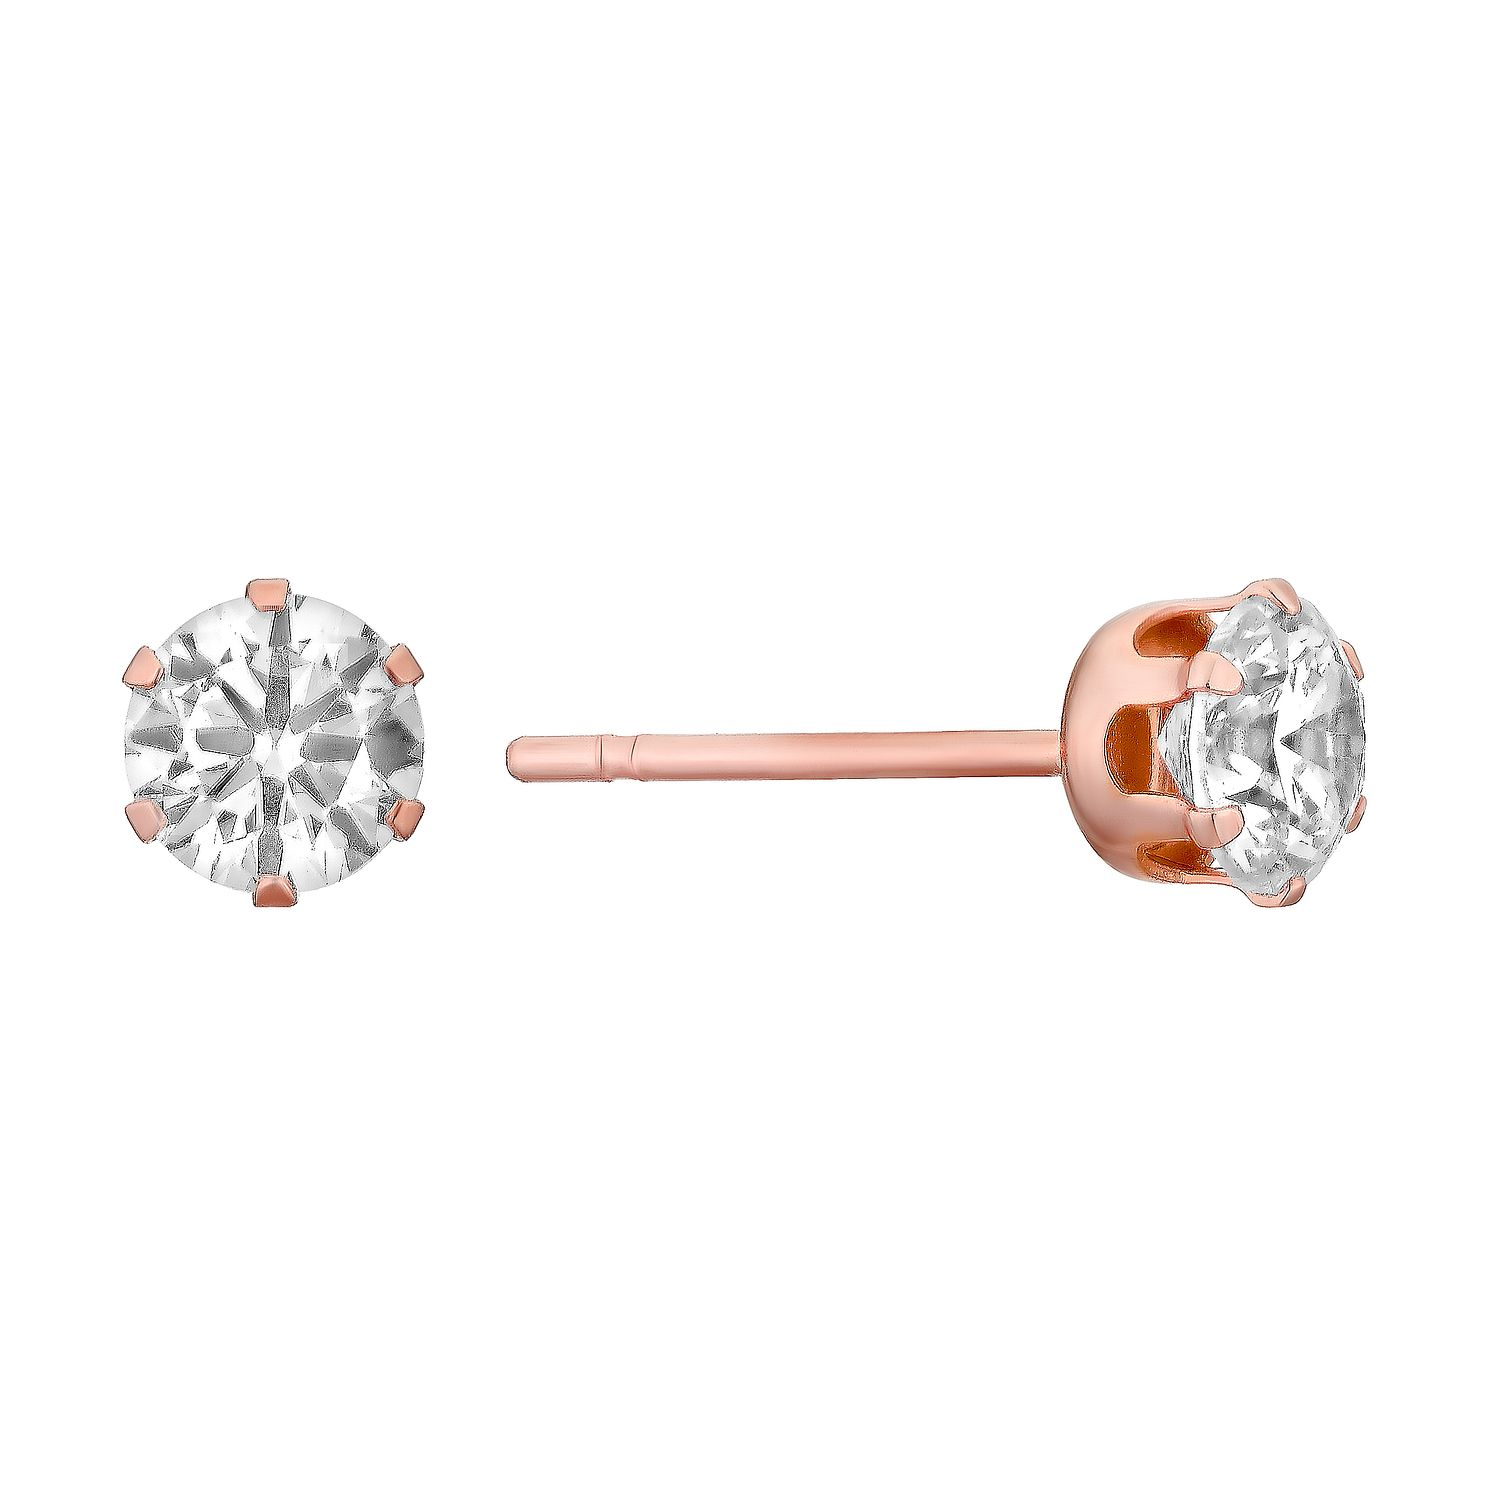 9ct Rose Gold Cubic Zirconia 4mm Stud Earrings - Product number 3060462